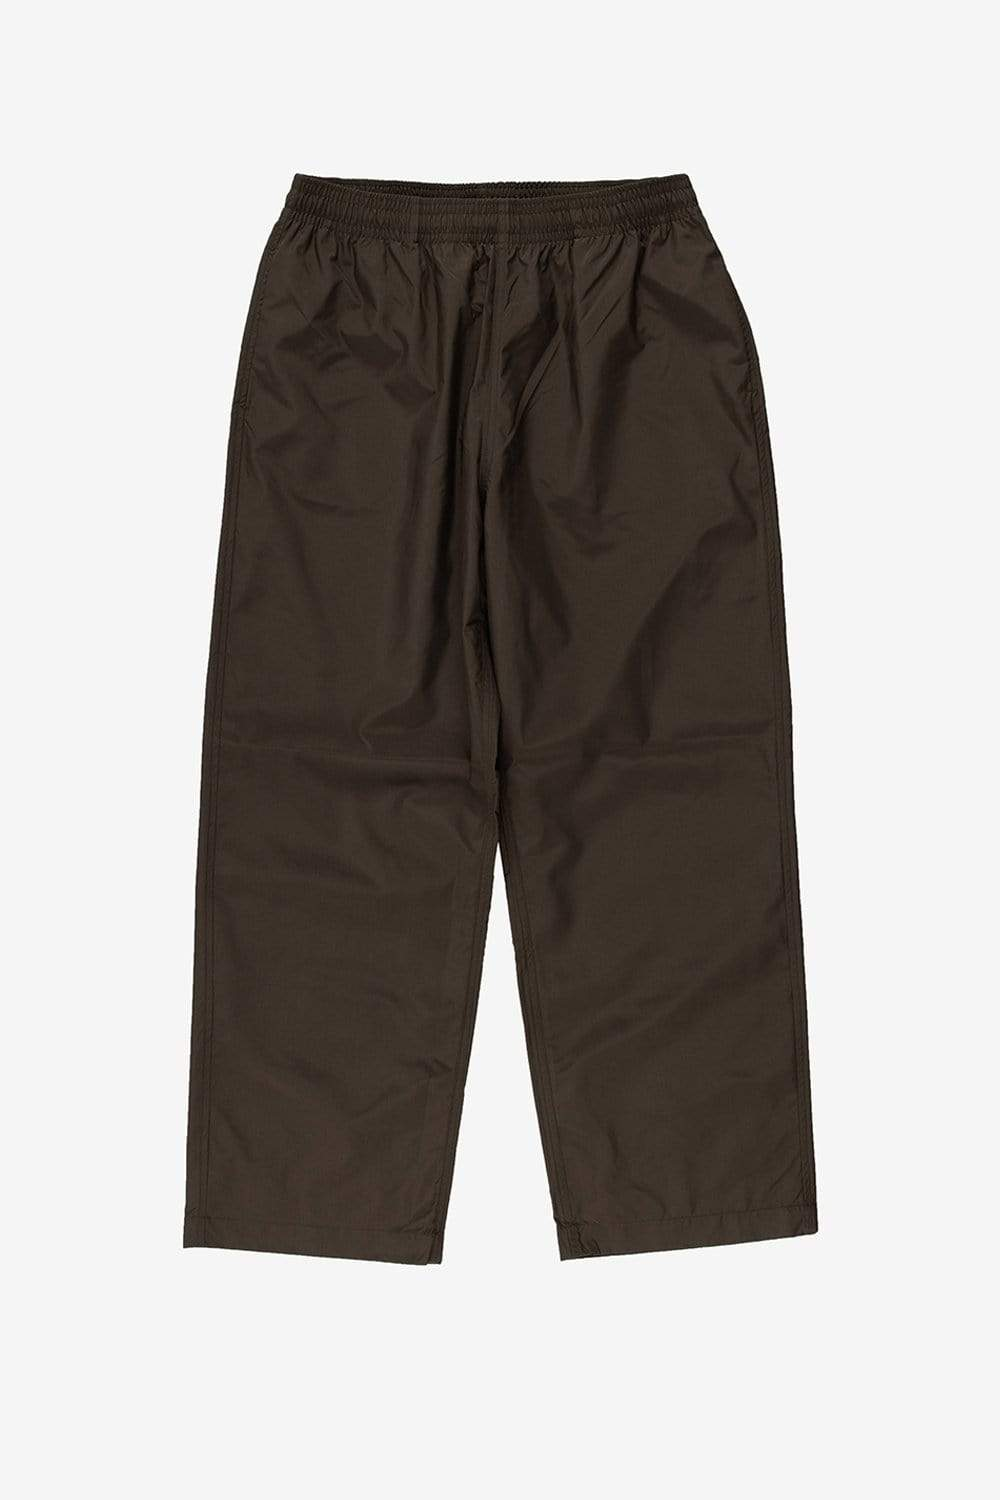 Our Legacy Apparel Reduced Trousers